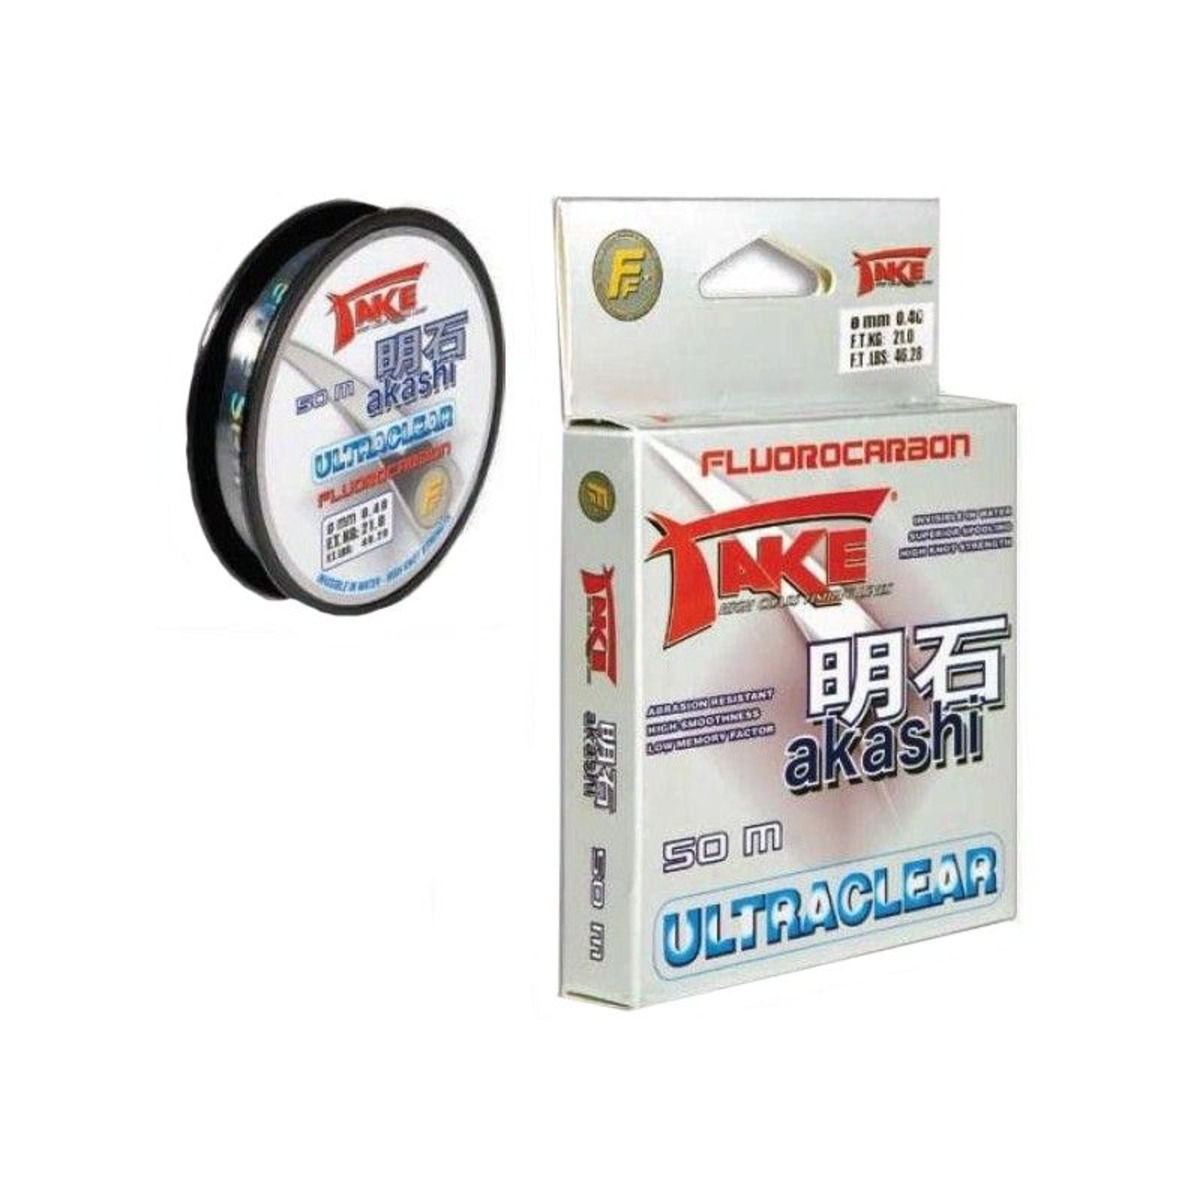 Lineaeffe Take Akashi Fluorocarbon Ultraclear - 0.10 mm - 50 m